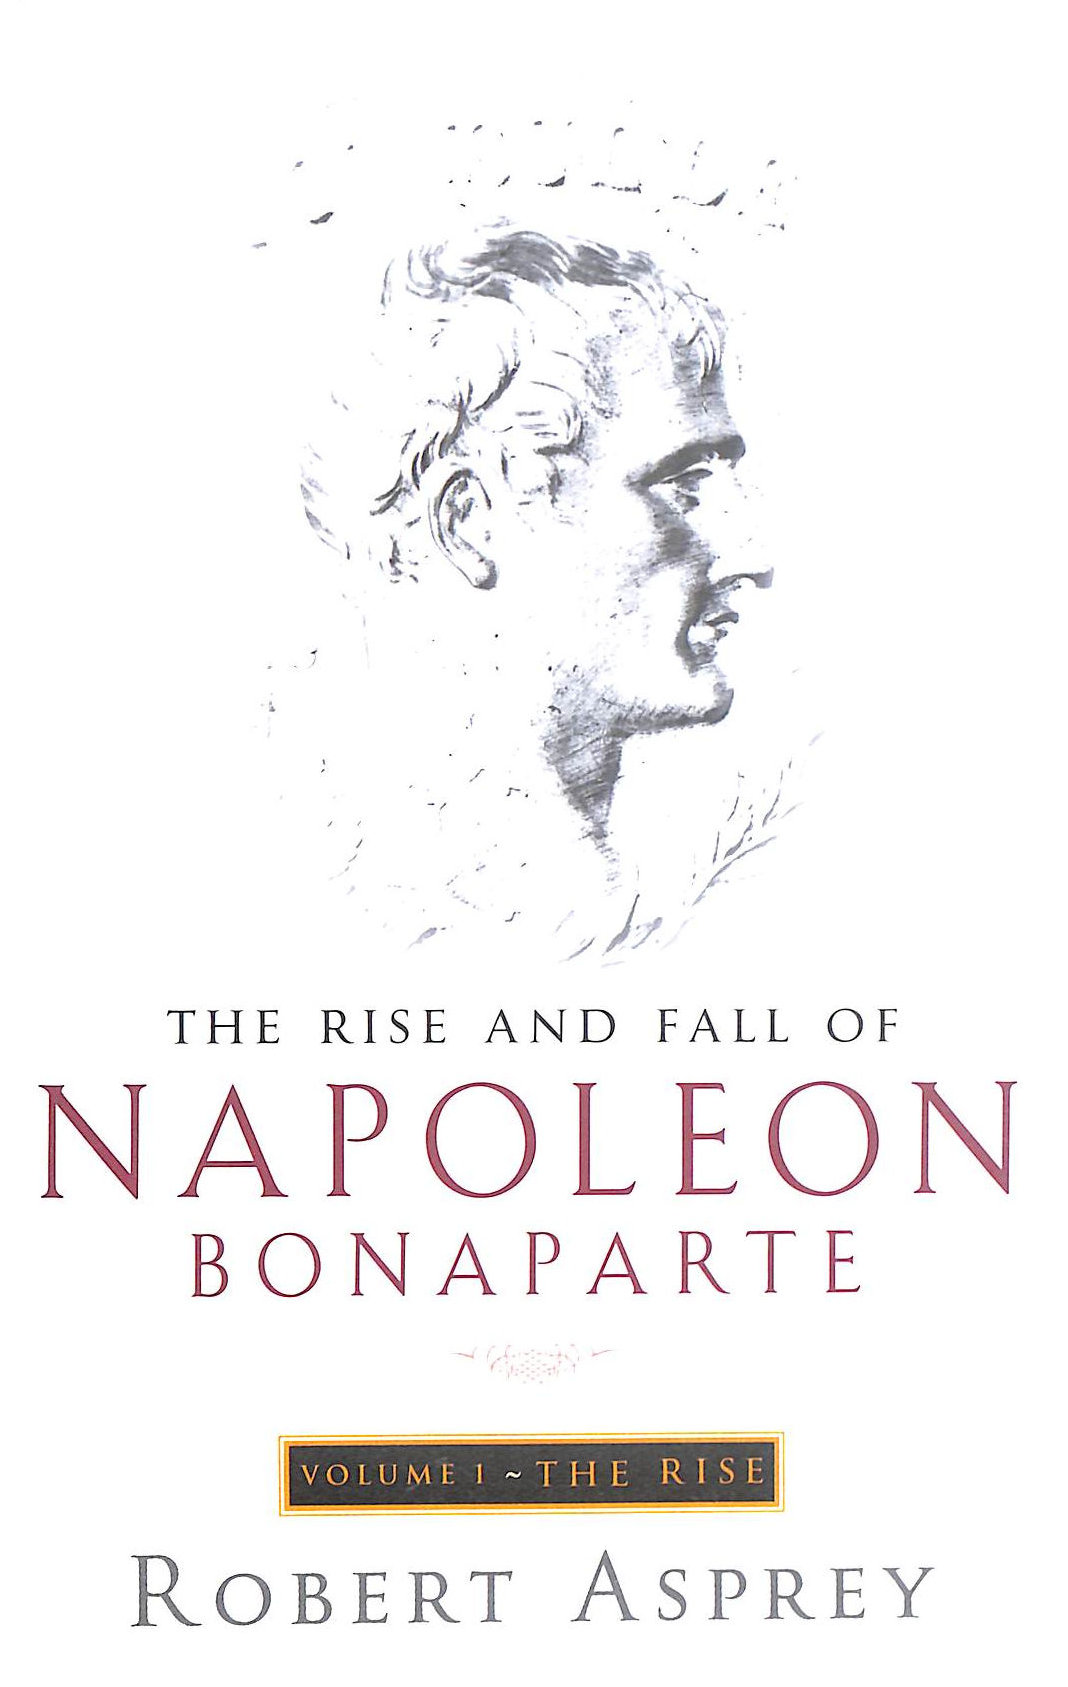 Image for The Rise And Fall Of Napoleon Vol 1: The Rise V. 1 (The Rise And Fall Of Napoleon Bonaparte)